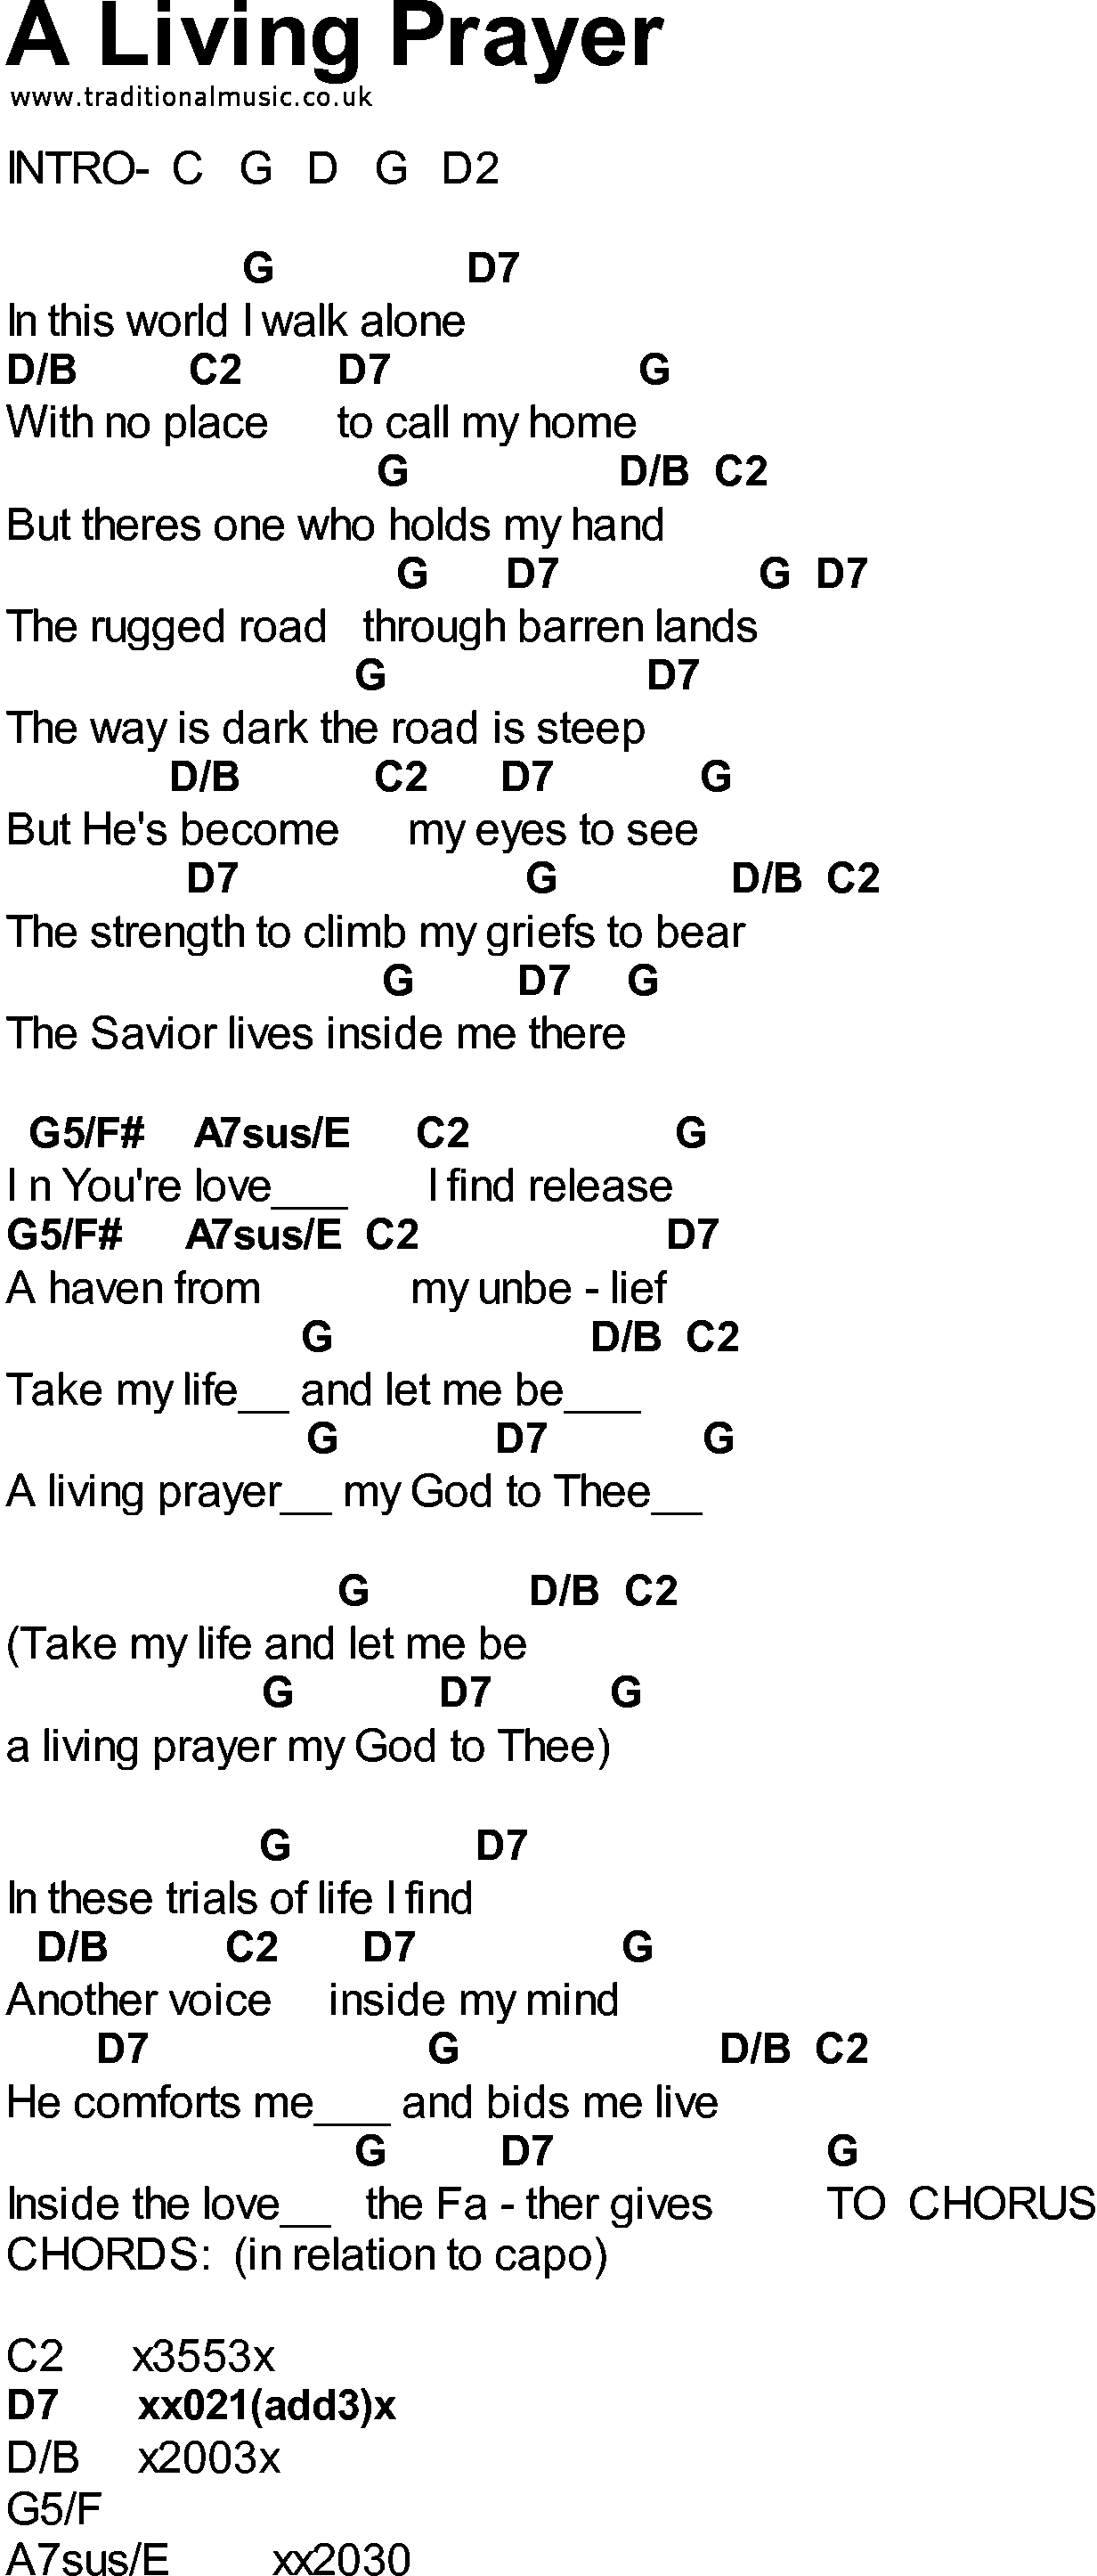 Bluegrass songs with chords   A Living Prayer   Lyrics and chords ...